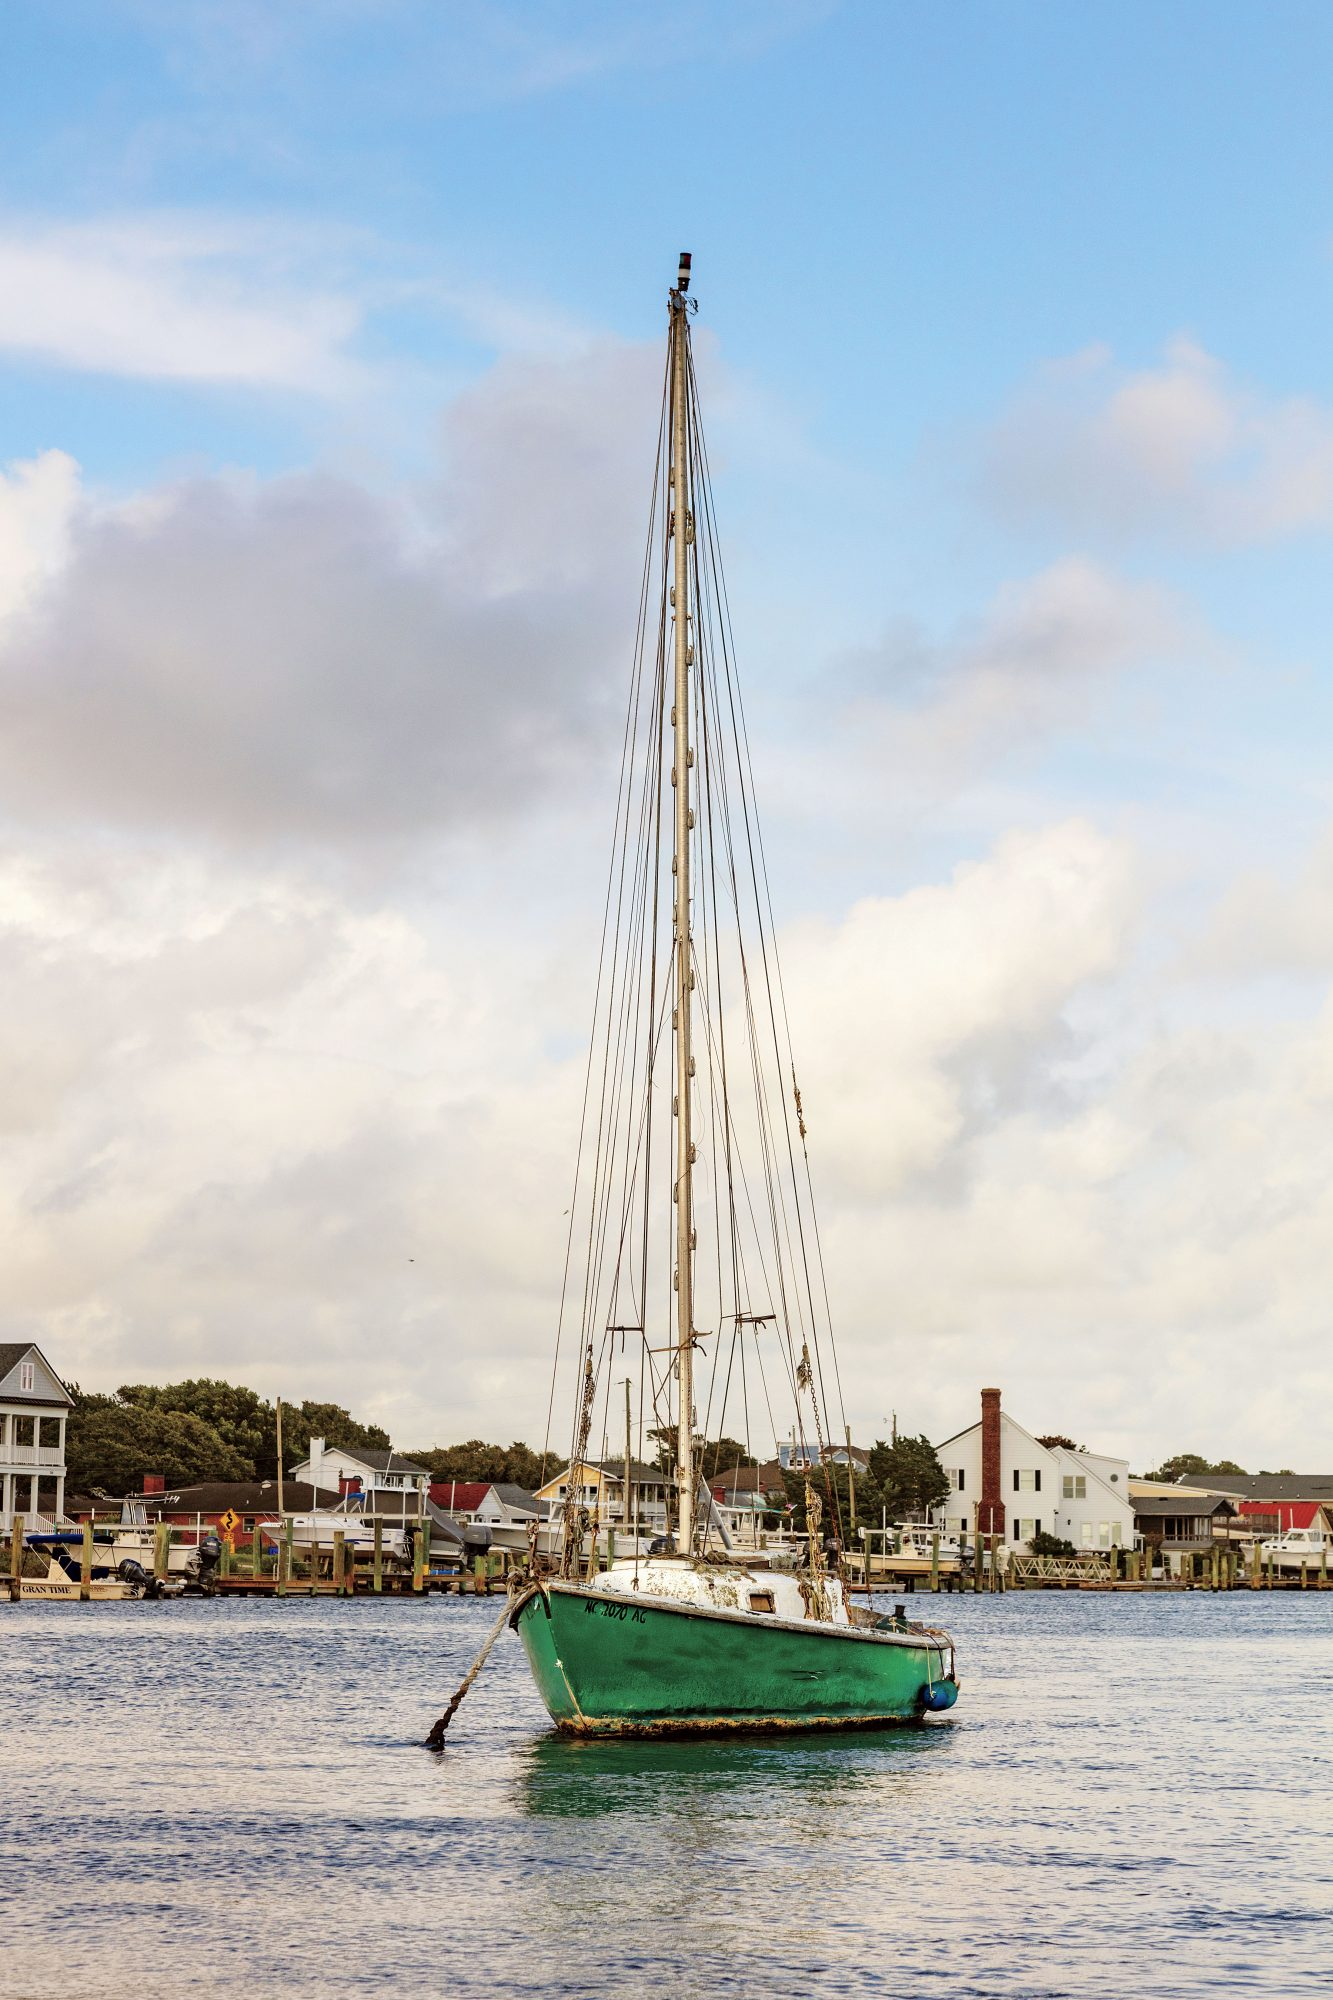 Sailboat in Beaufort, NC